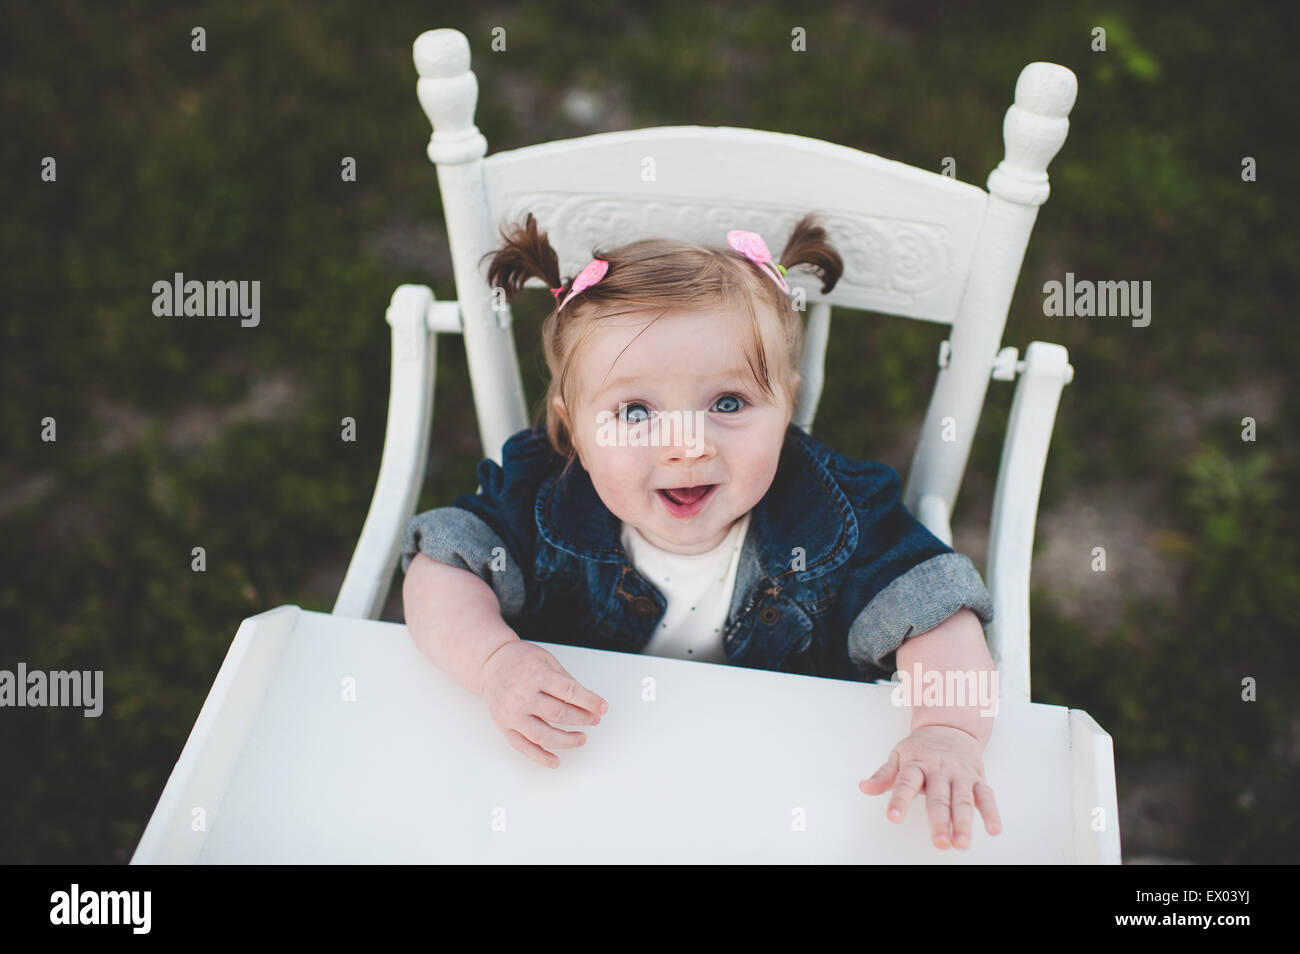 Portrait of baby girl in high chair - Stock Image